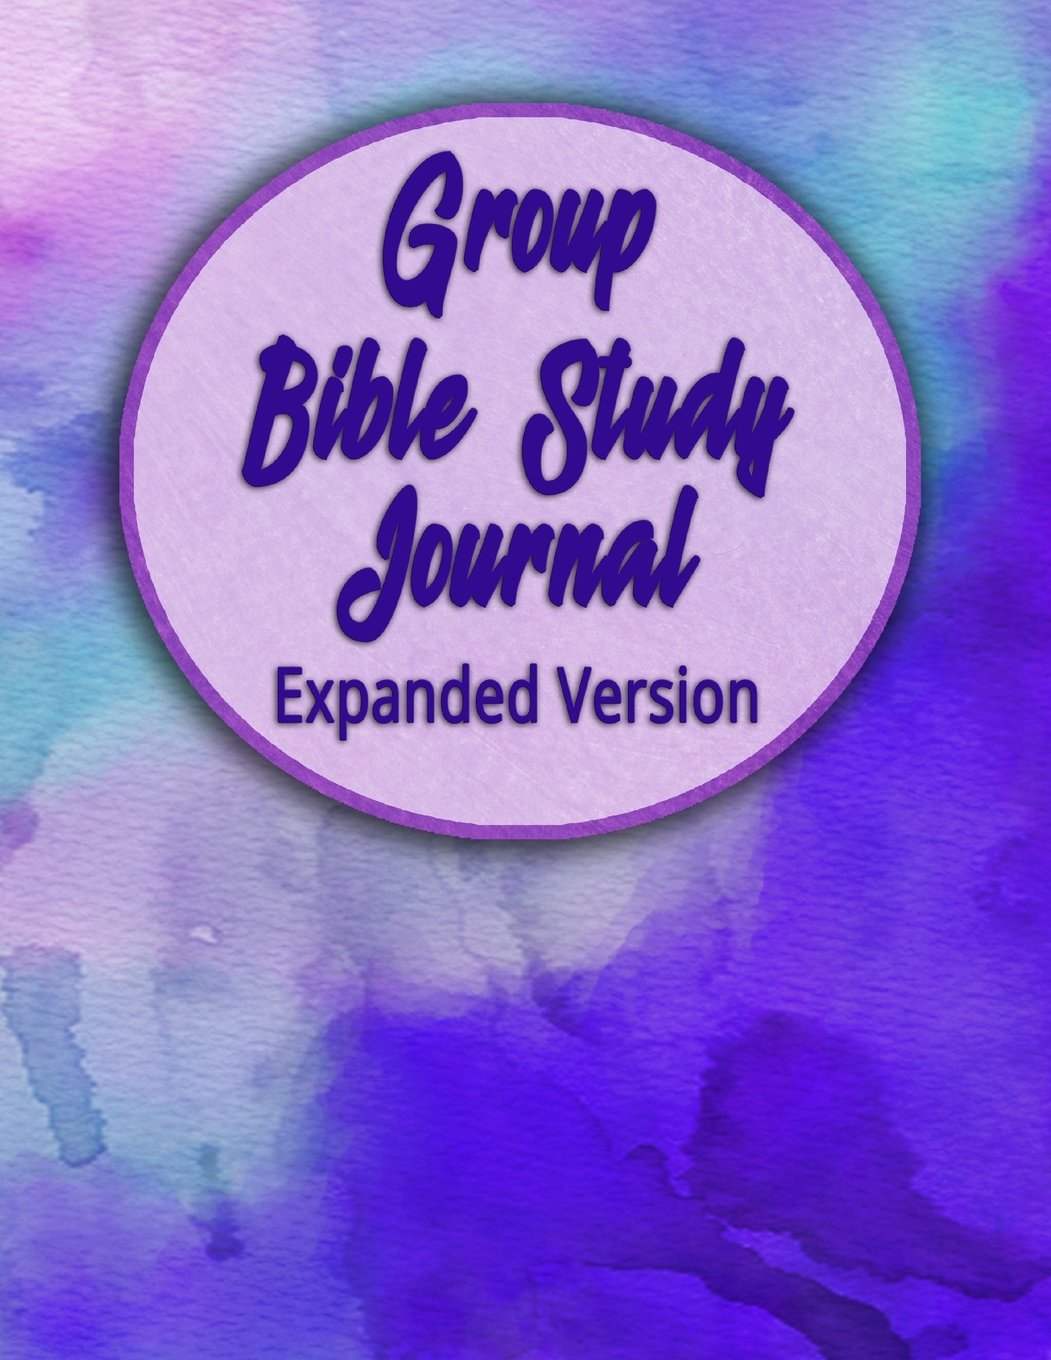 Group Bible Study Journal - Expanded Version: Purple Watercolor  8.5x11 inch  214 pages  1 Year Bible Study Journals  Church Journal PDF